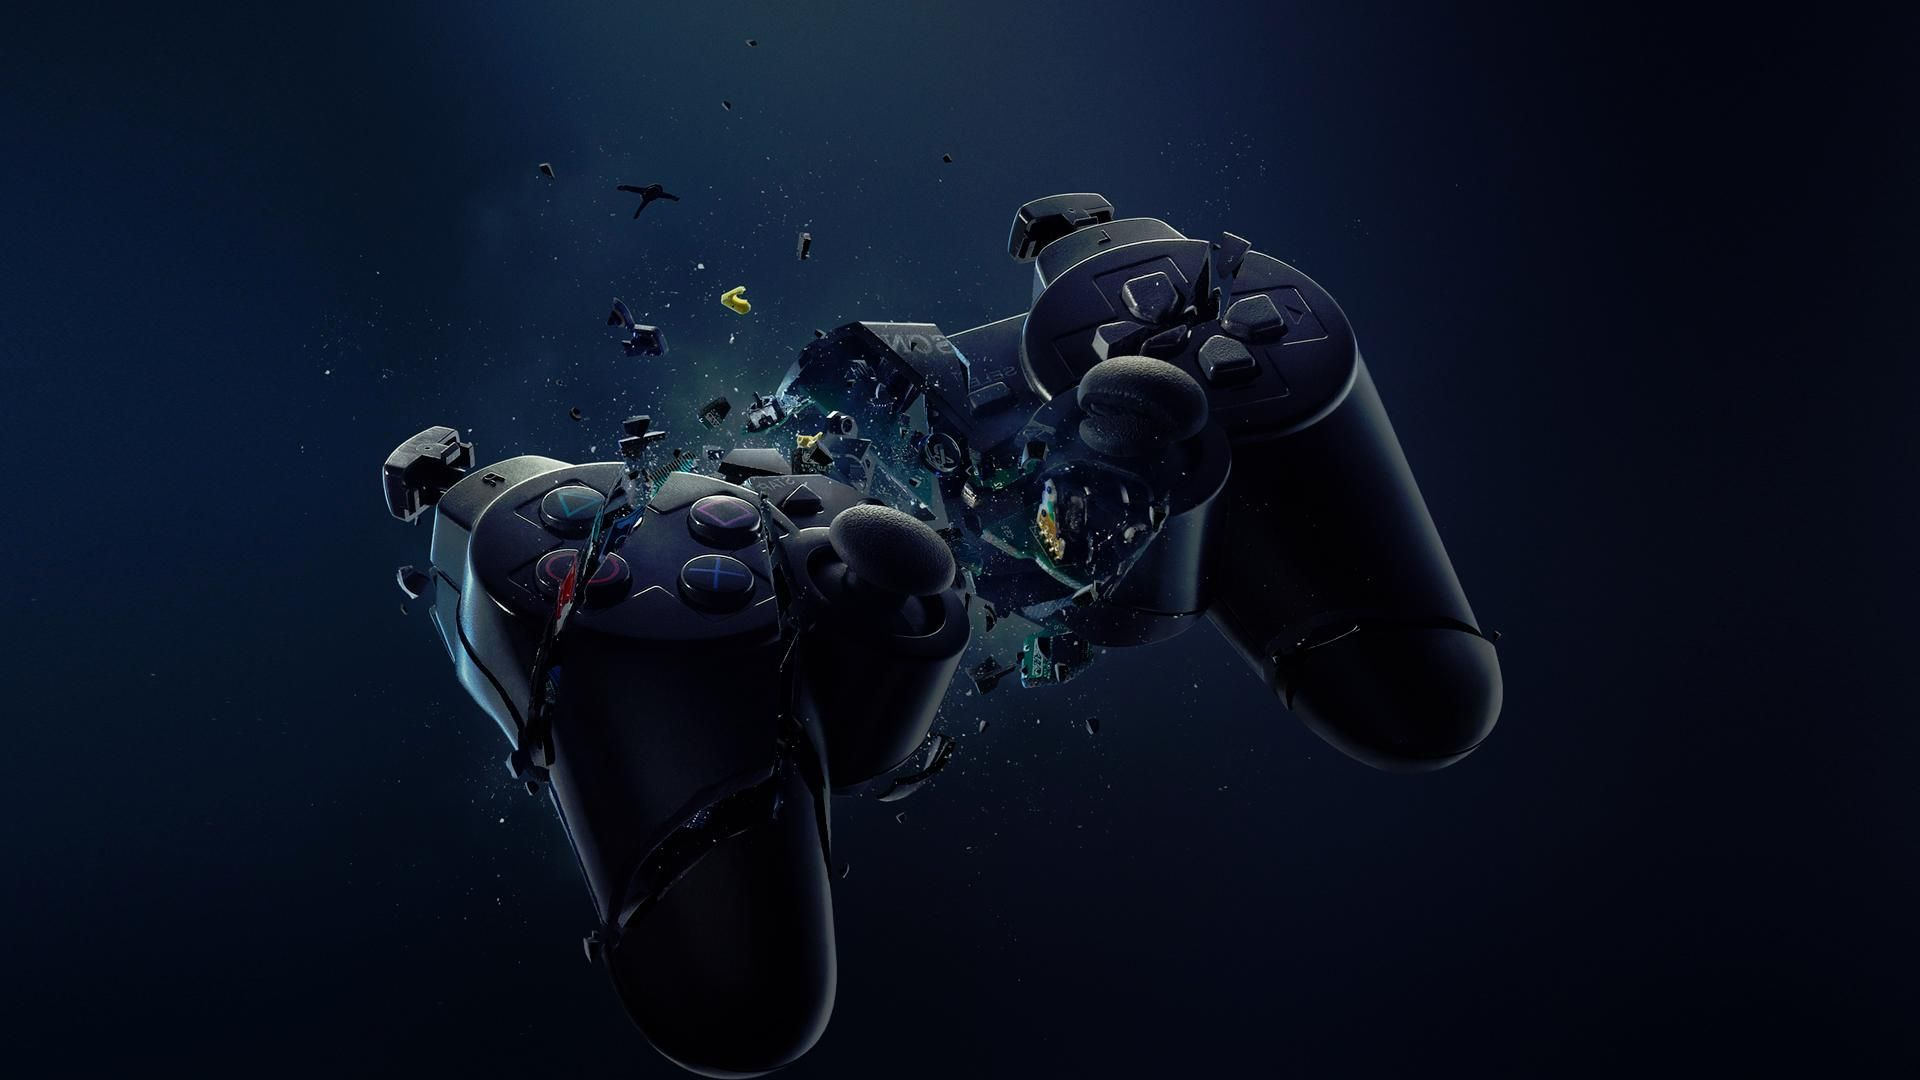 PlayStation Wallpapers Wallpaper Cave Android wallpaper